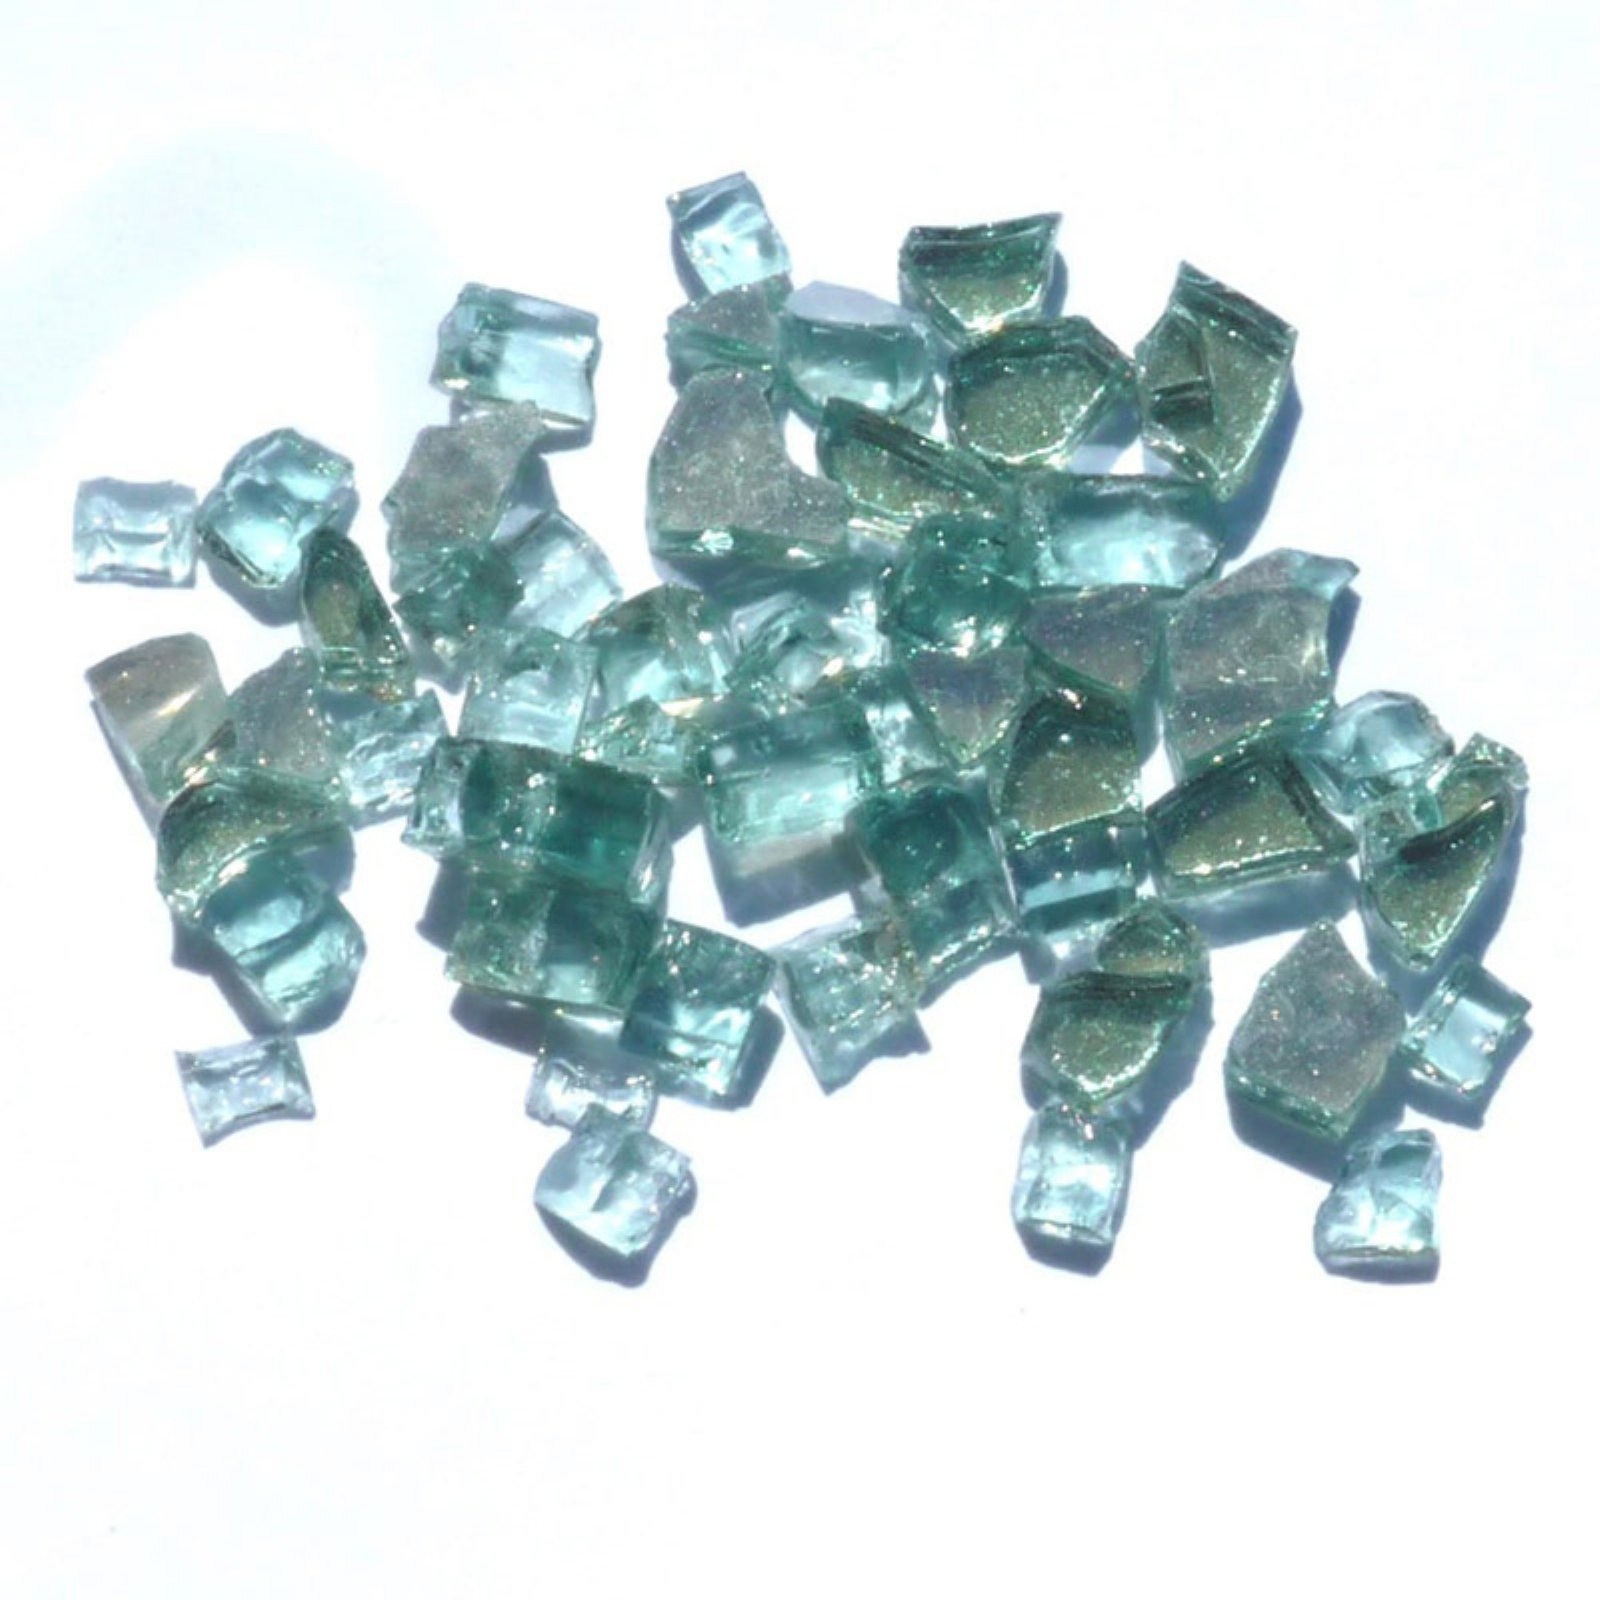 Tretco 0.25 in. Forest Green Reflective Fire Glass Crystals